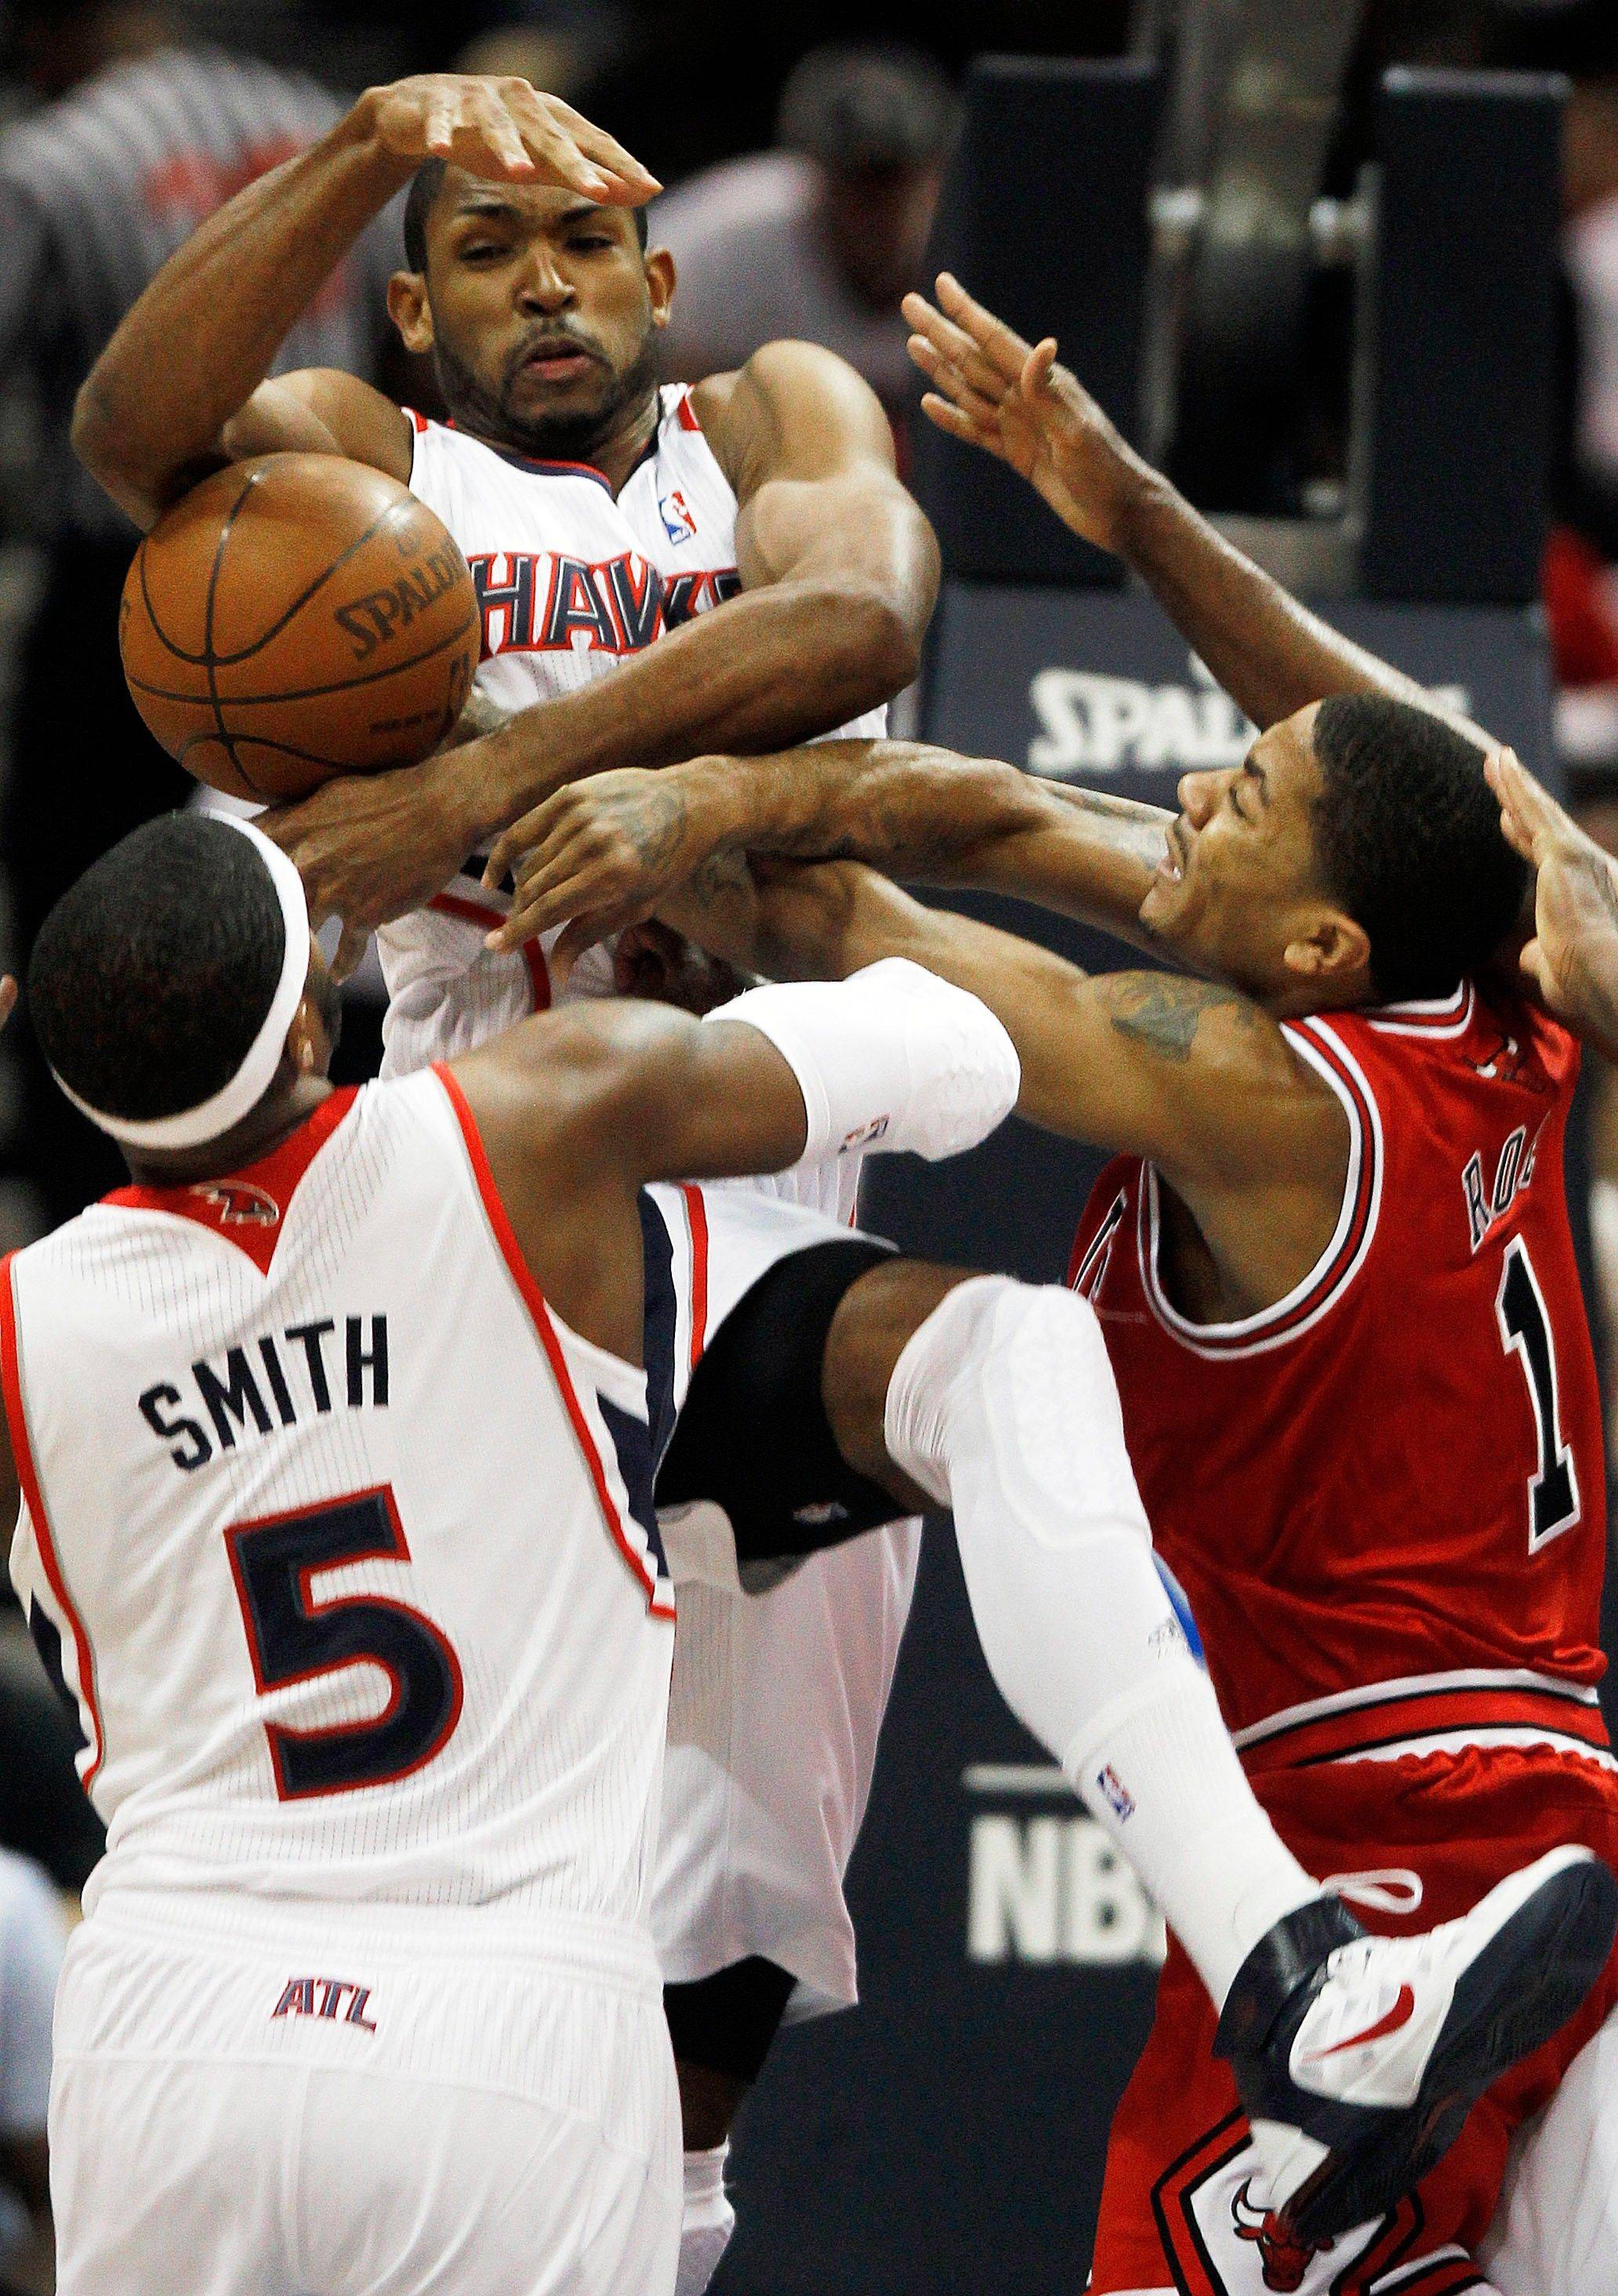 Atlanta Hawks center Al Horford, top center, vies for a rebound against Derrick Rose (1) as power forward Josh Smith (5) defends in the first quarter.